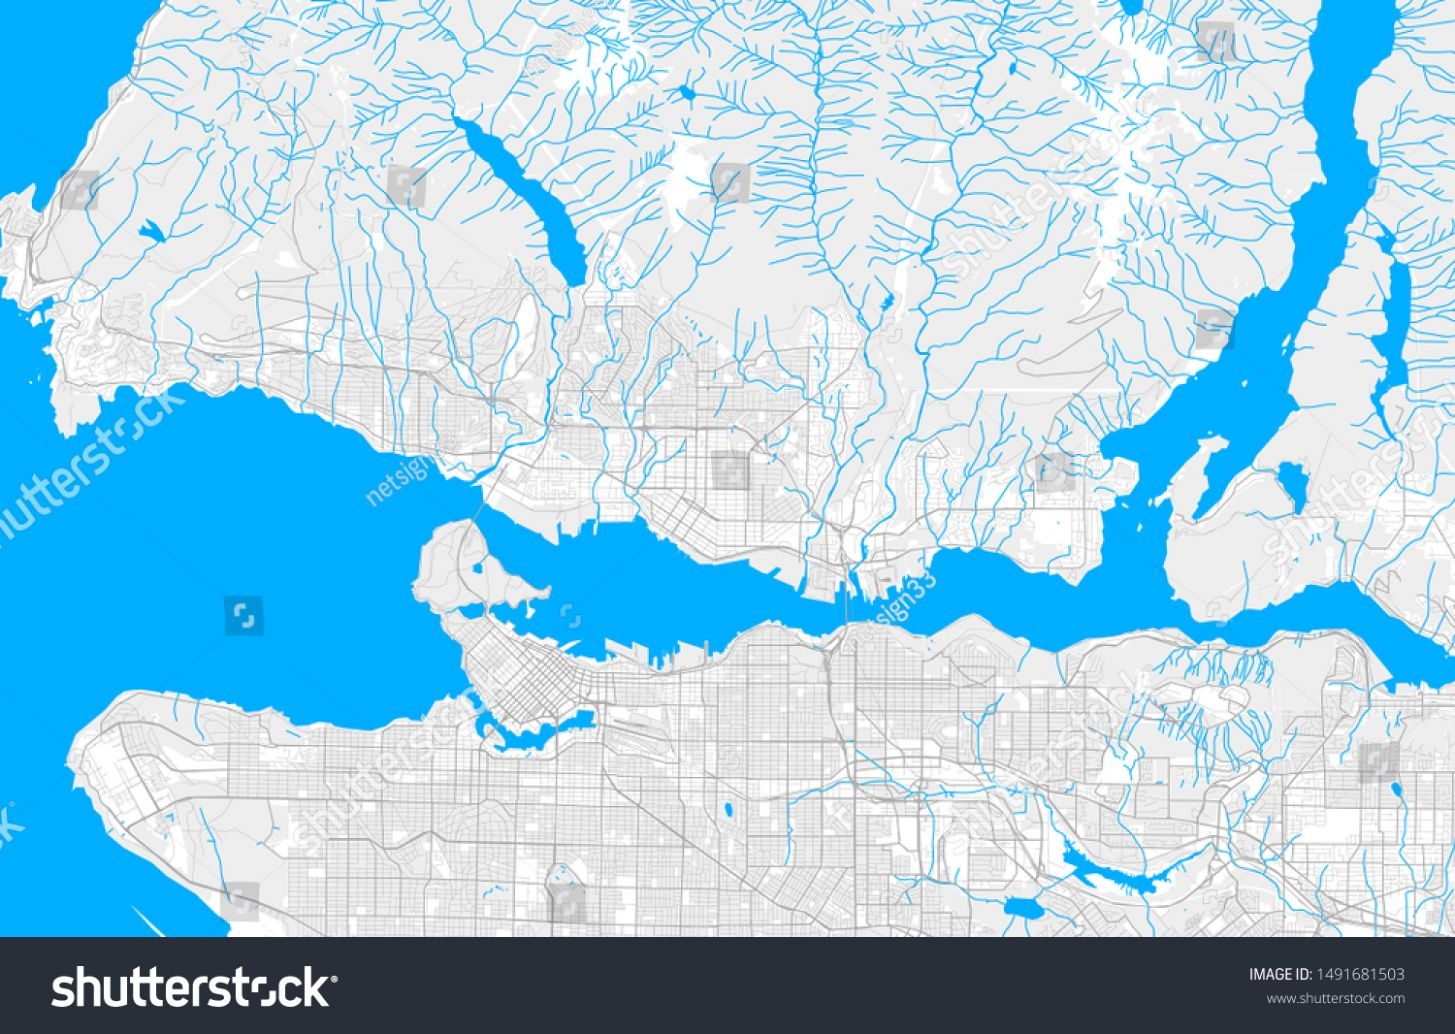 Rich Detailed Vector Area Map North Stock Vector (Royalty Free ...